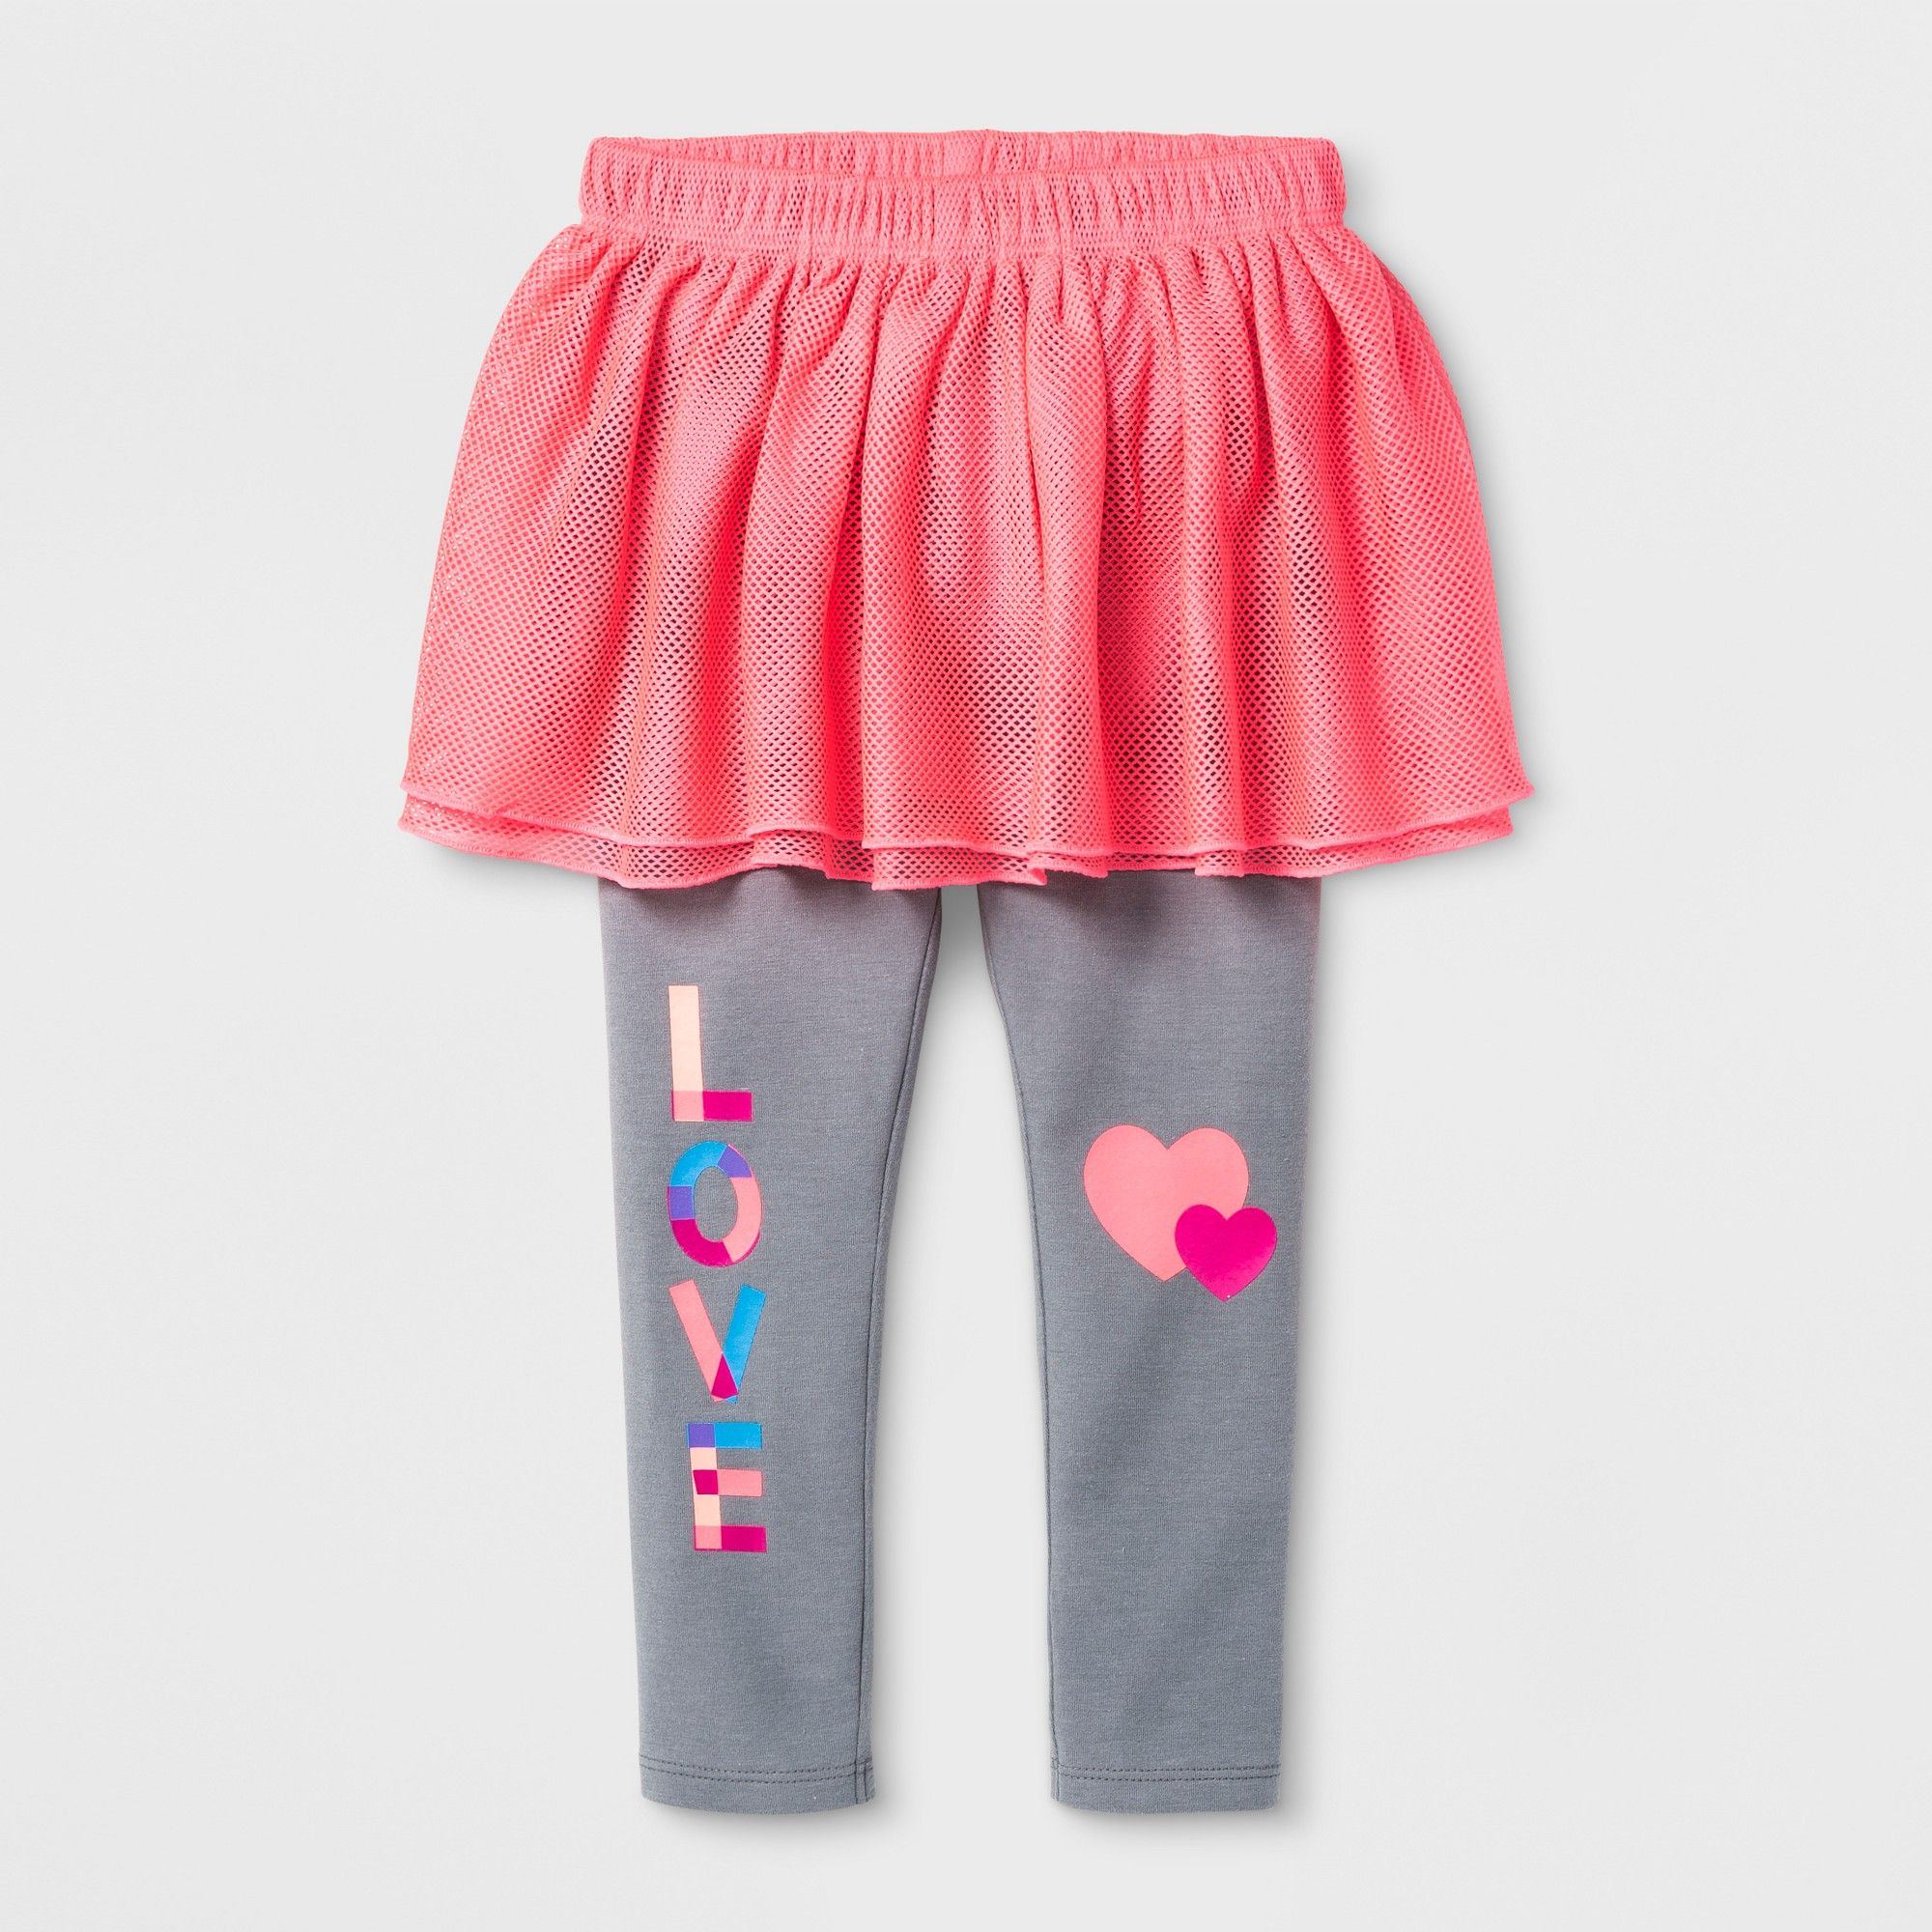 323e20f9d4020 Toddler Girls' V-Day Skeggings - Cat & Jack Coral 3T, Gray | Products